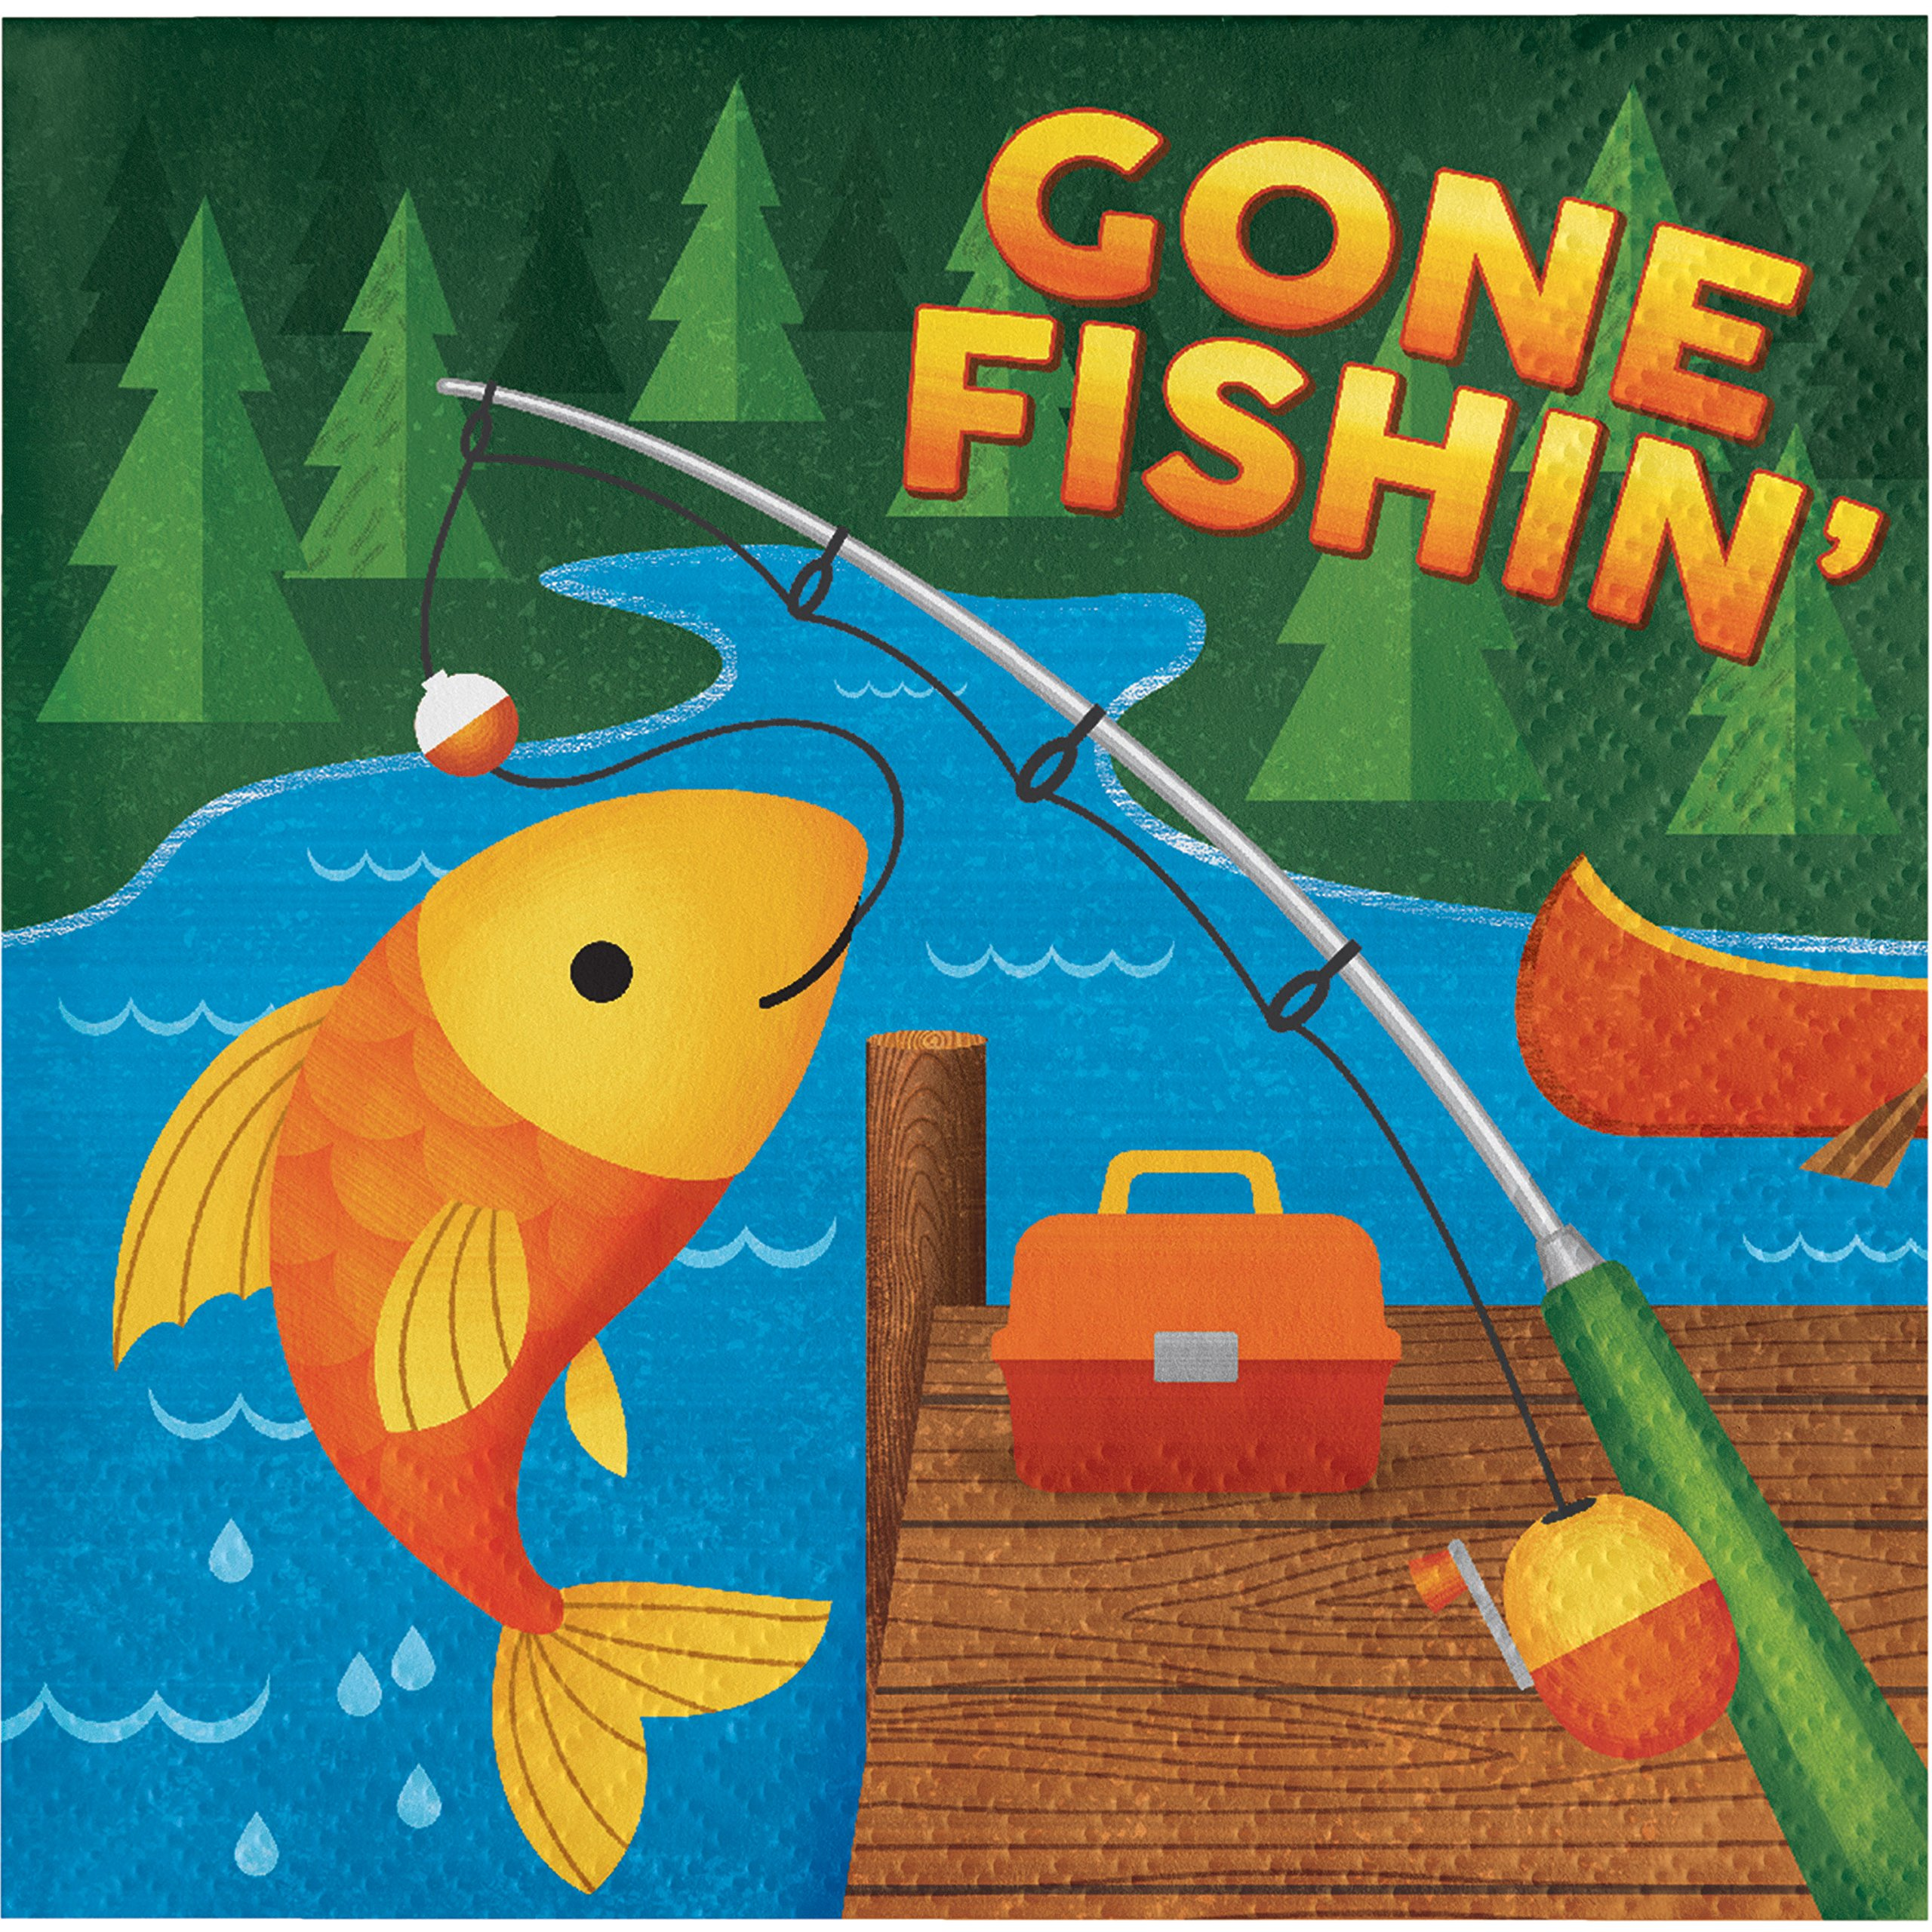 Camping Gone Fishing Napkins, 48 Count